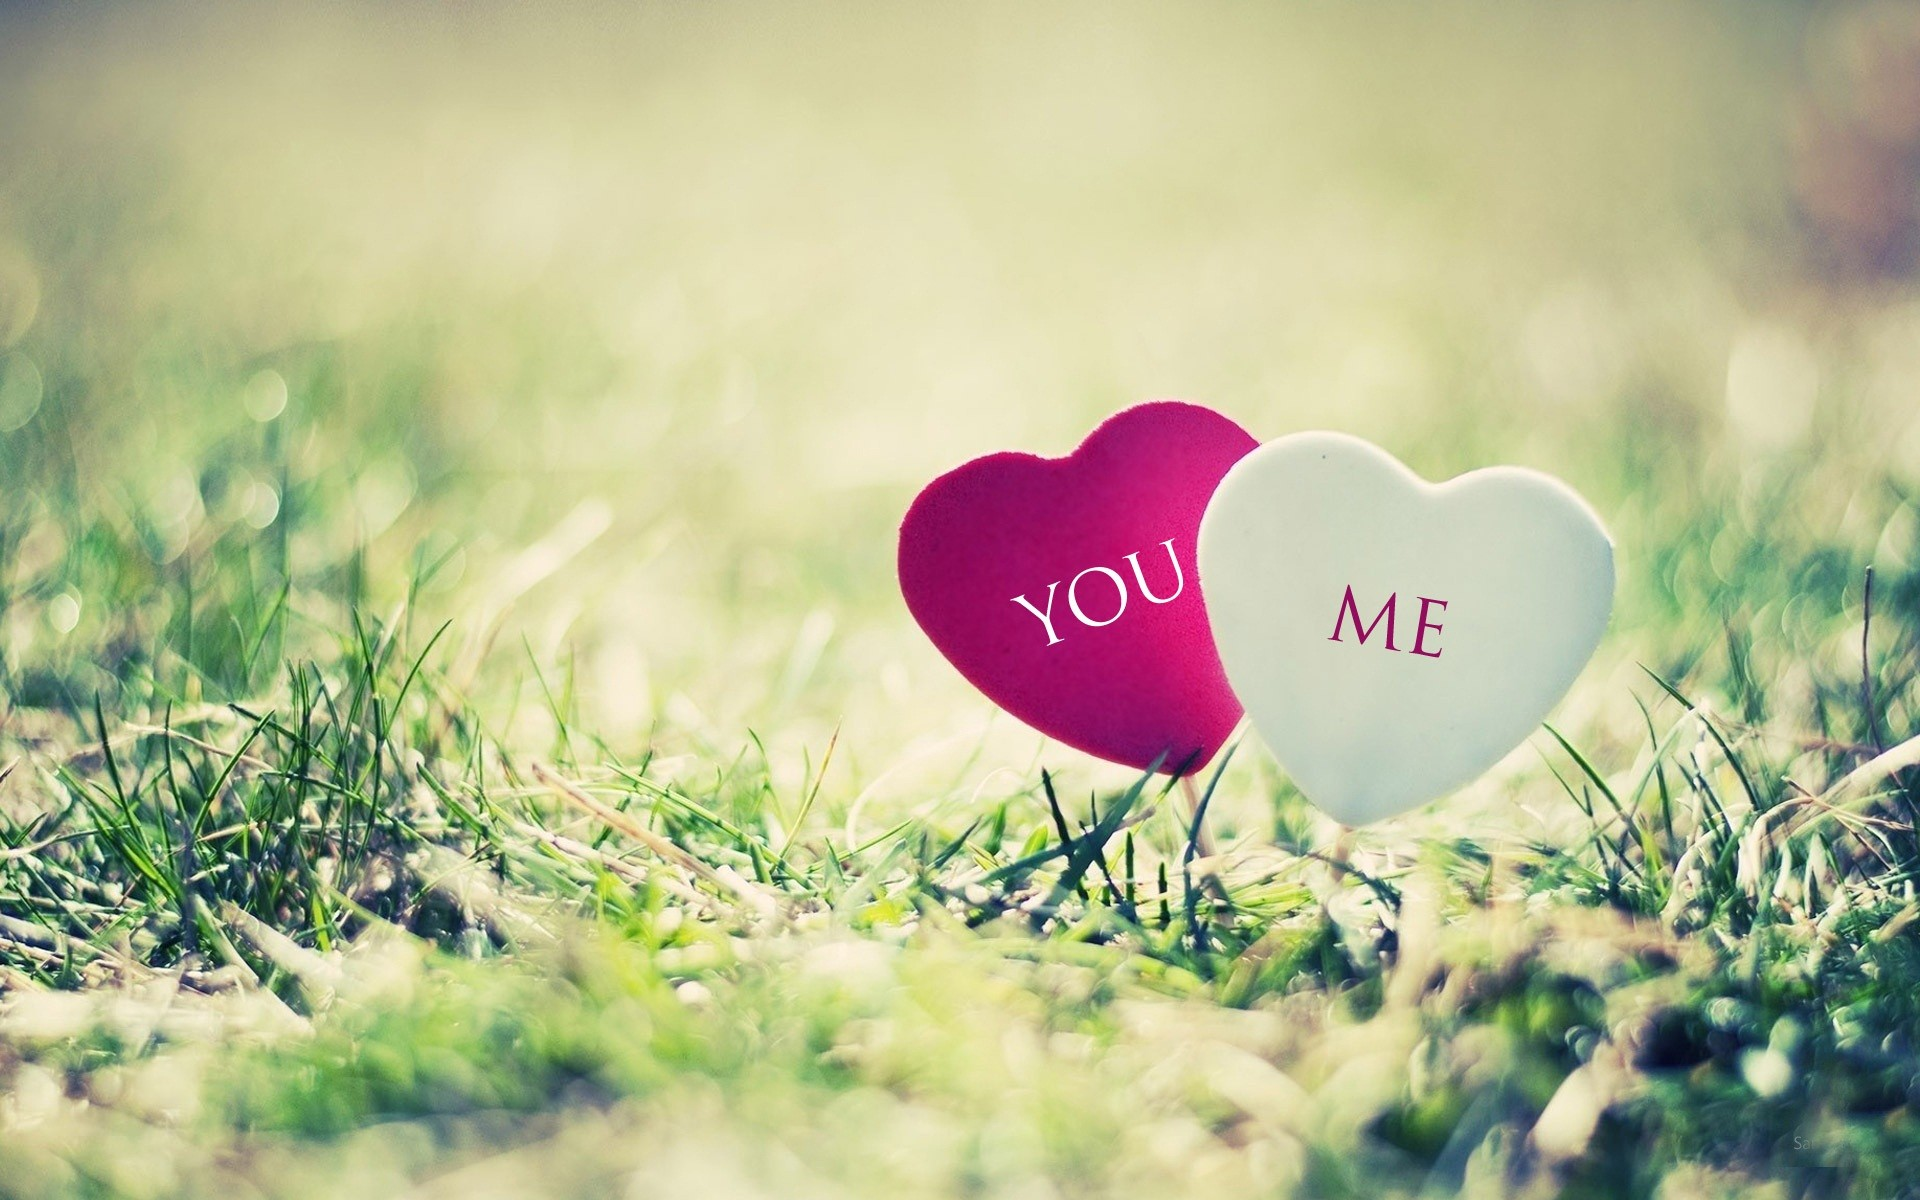 I Love You Wallpaper (60+ Images